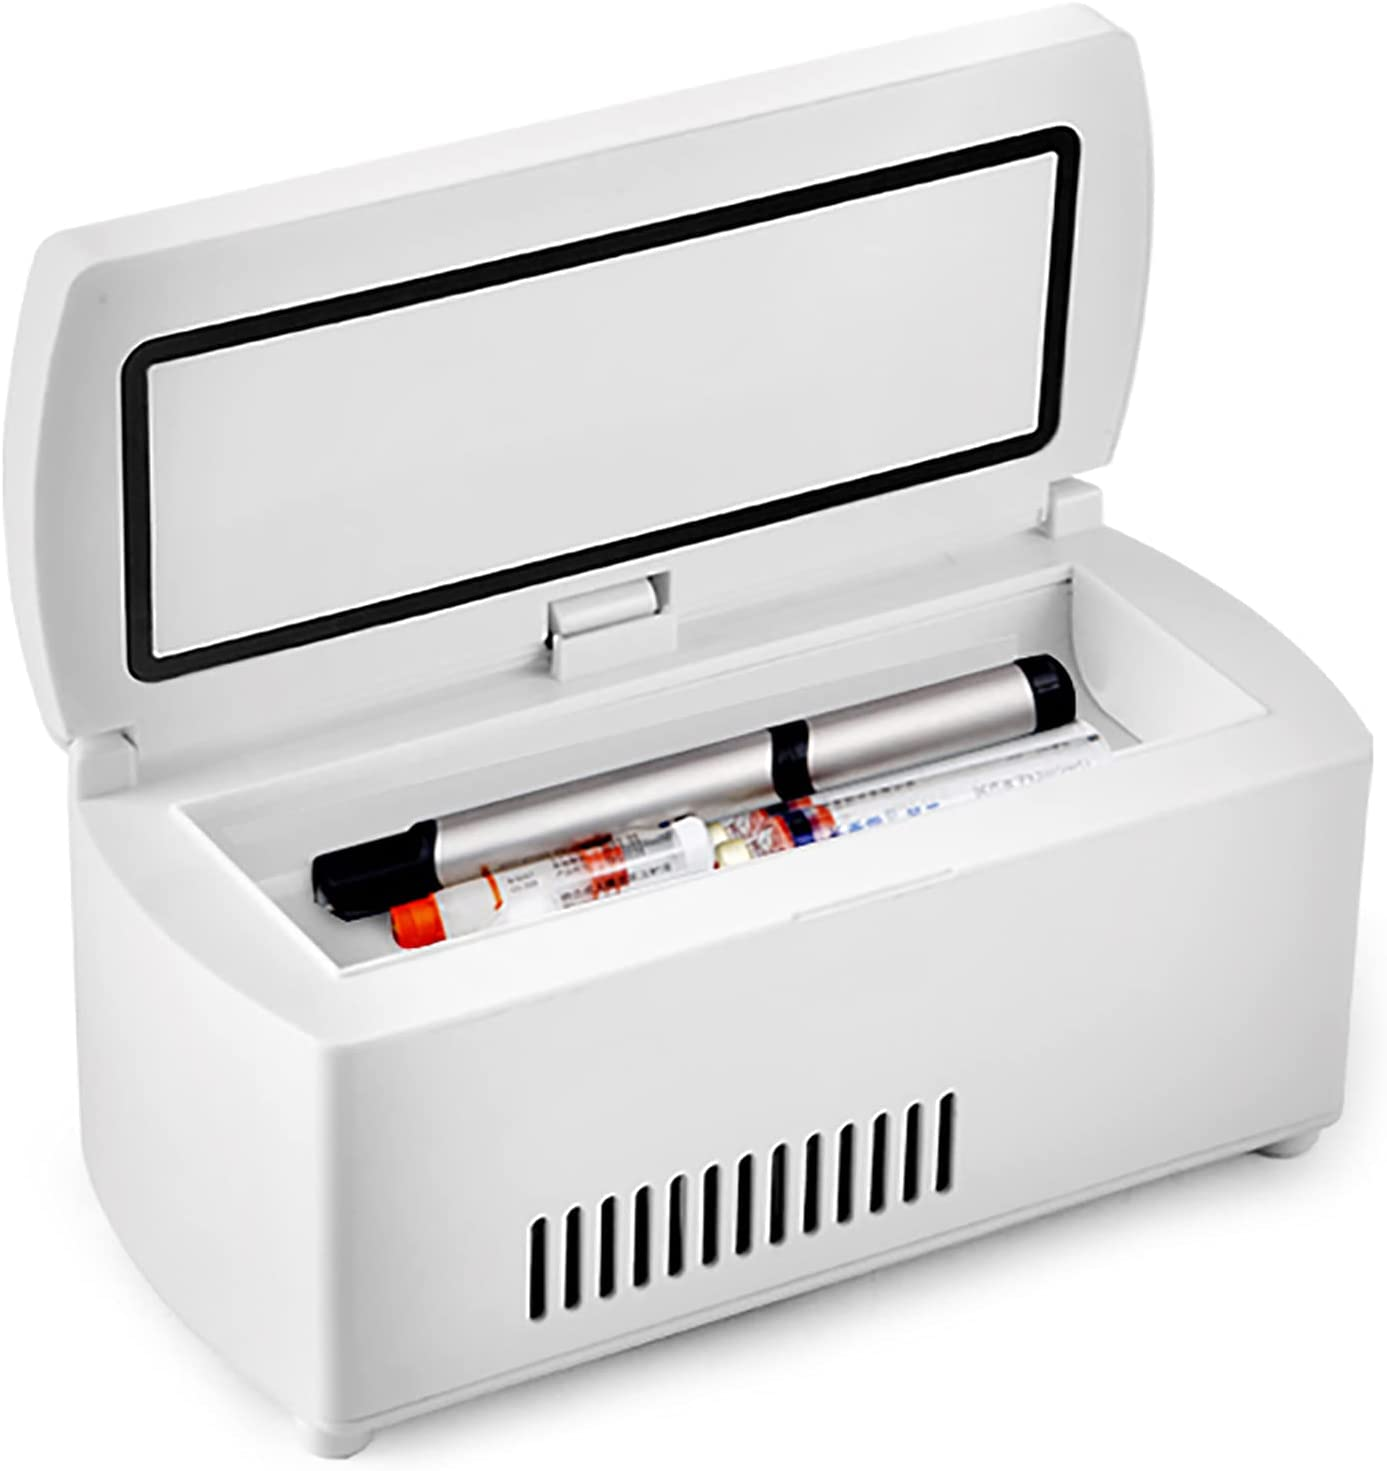 Insulin Cooler Refrigerated Box New product Portable 2-8°C Drug Fort Worth Mall